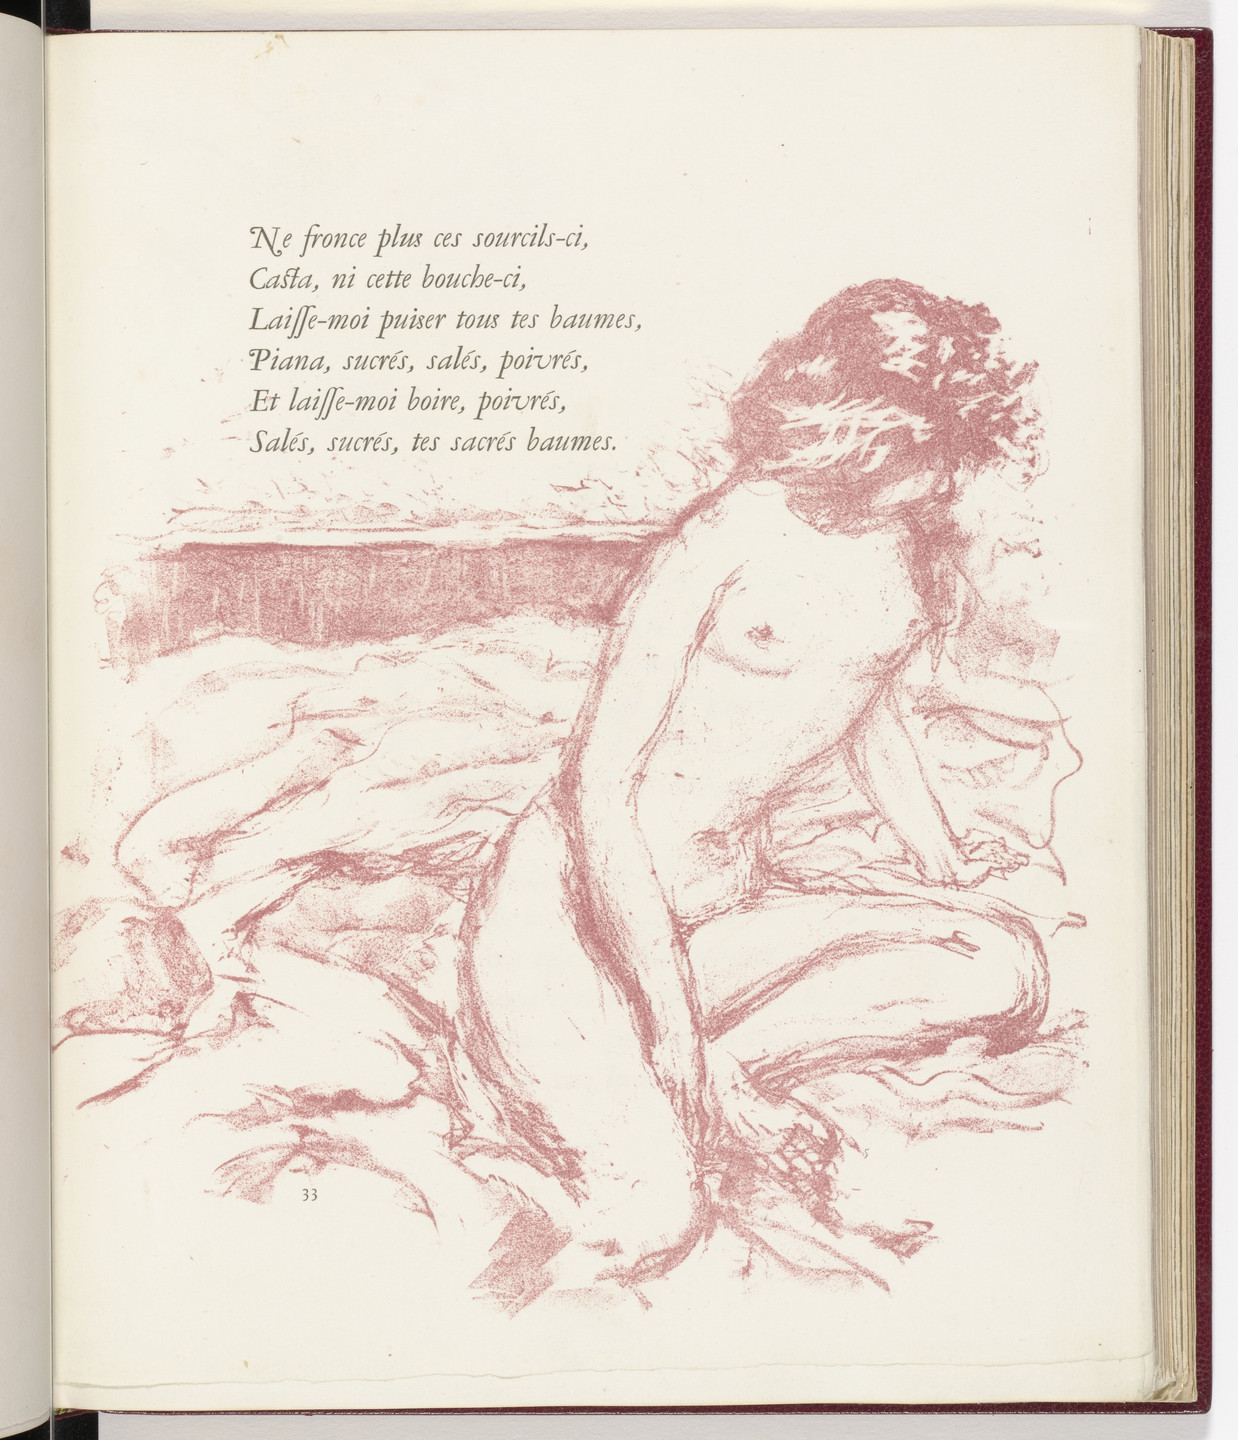 Pierre Bonnard. In-text plate (page 33) from Parallèlement (In Parallel). 1900